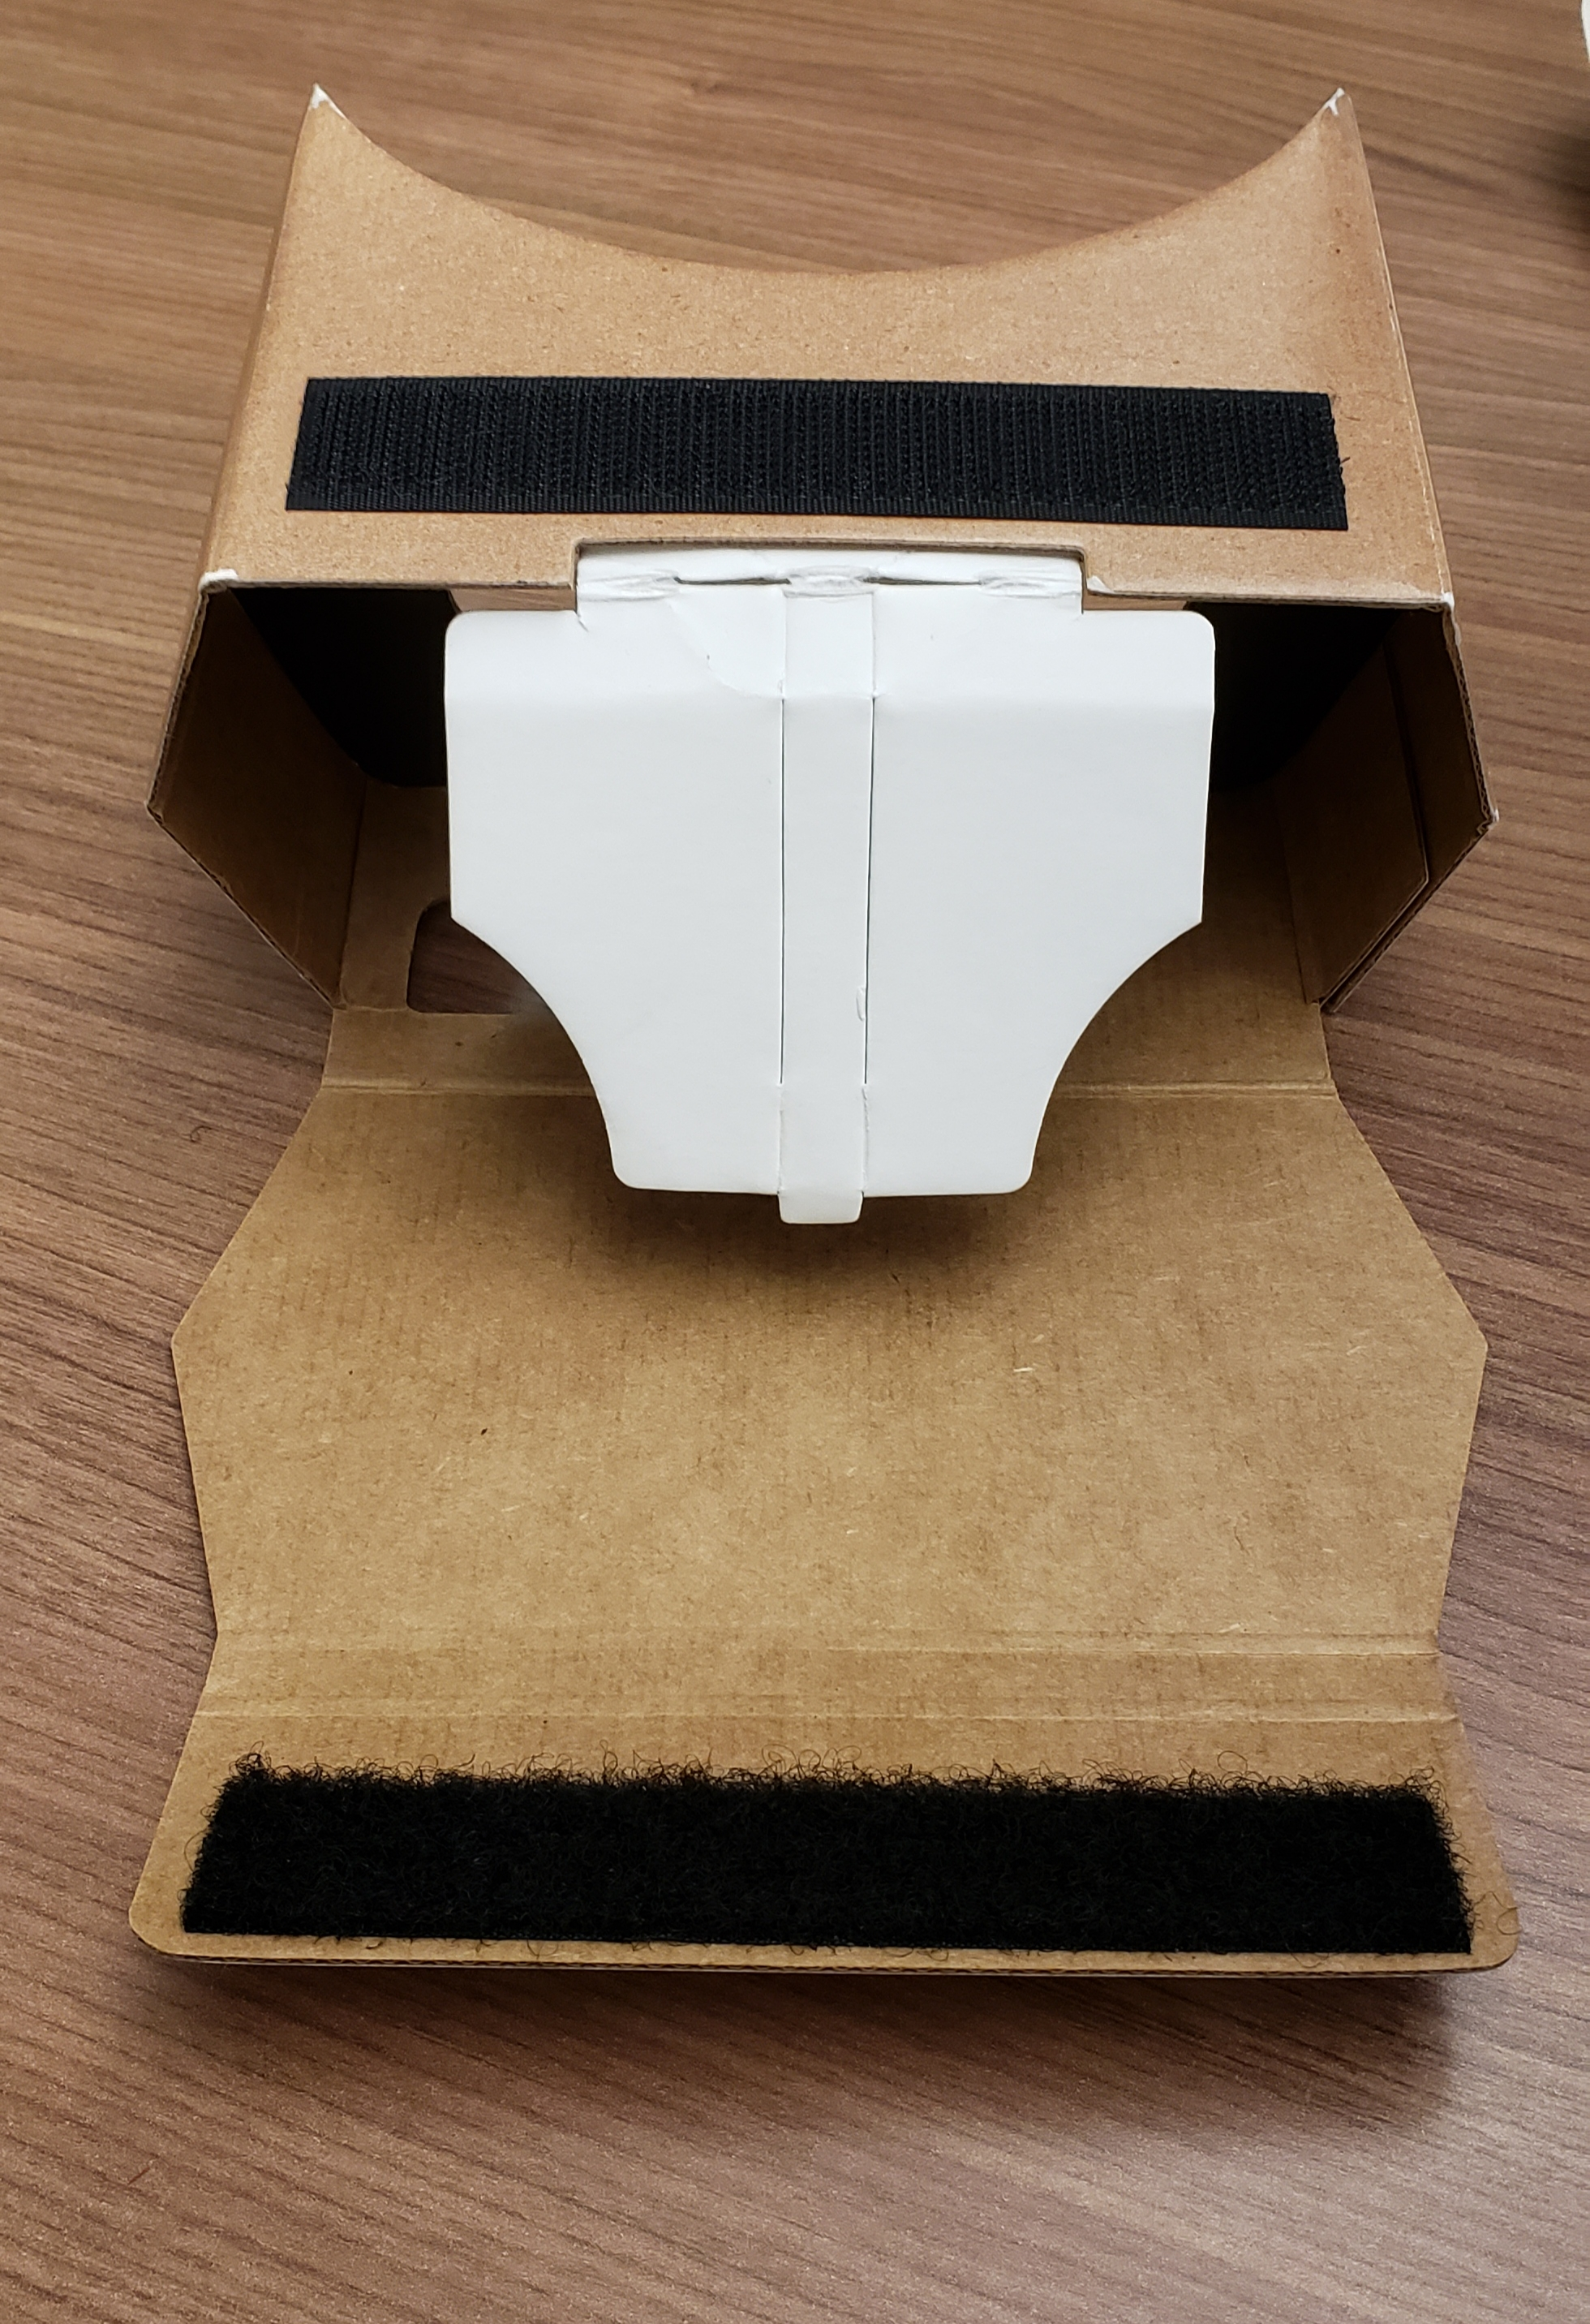 Using the Velcro to secure phone in the Google Cardboard